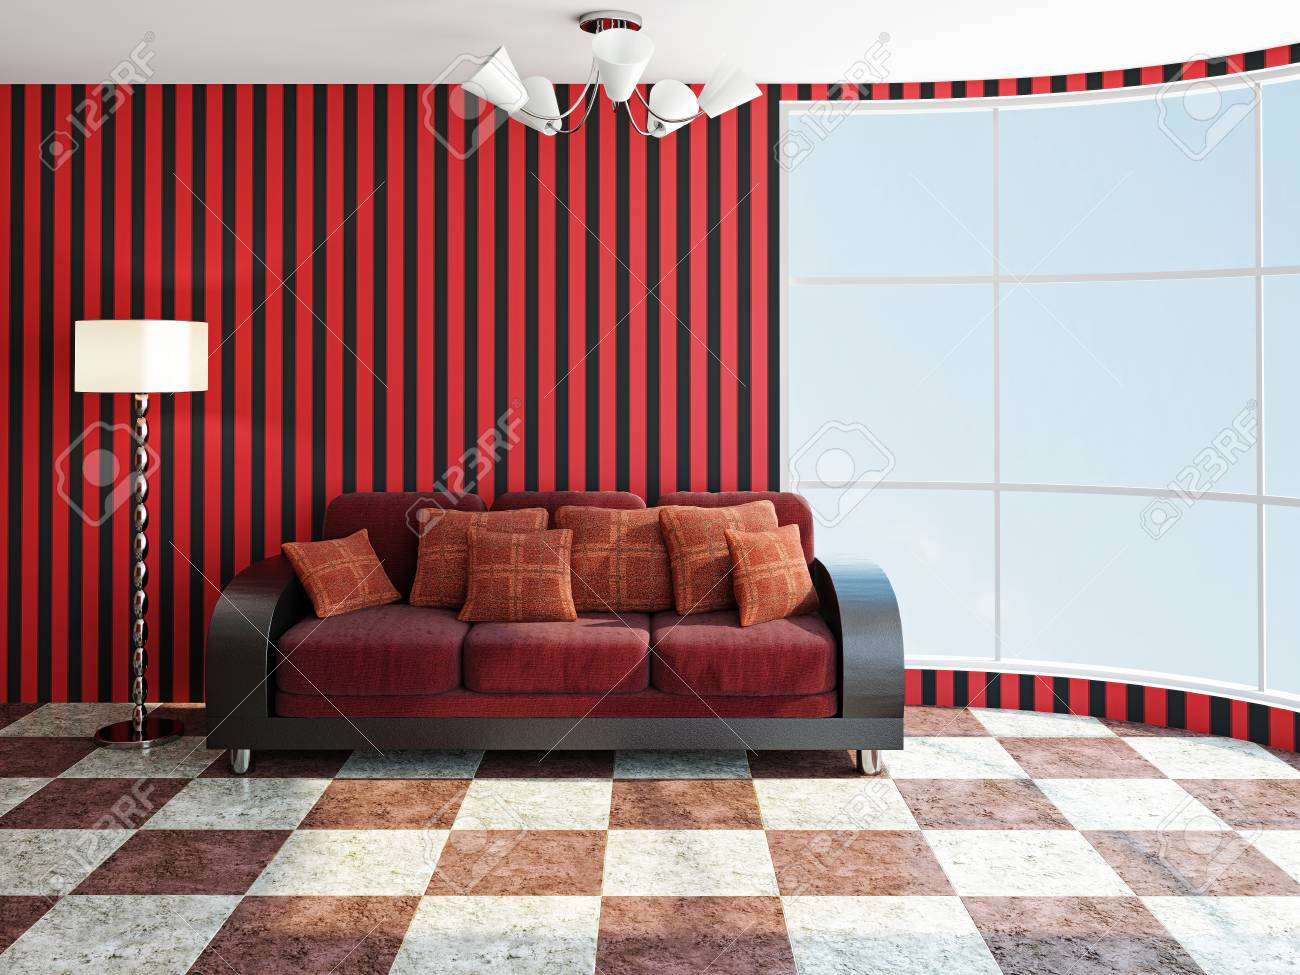 Sofa with red pillows near a window Stock Photo - 22434715